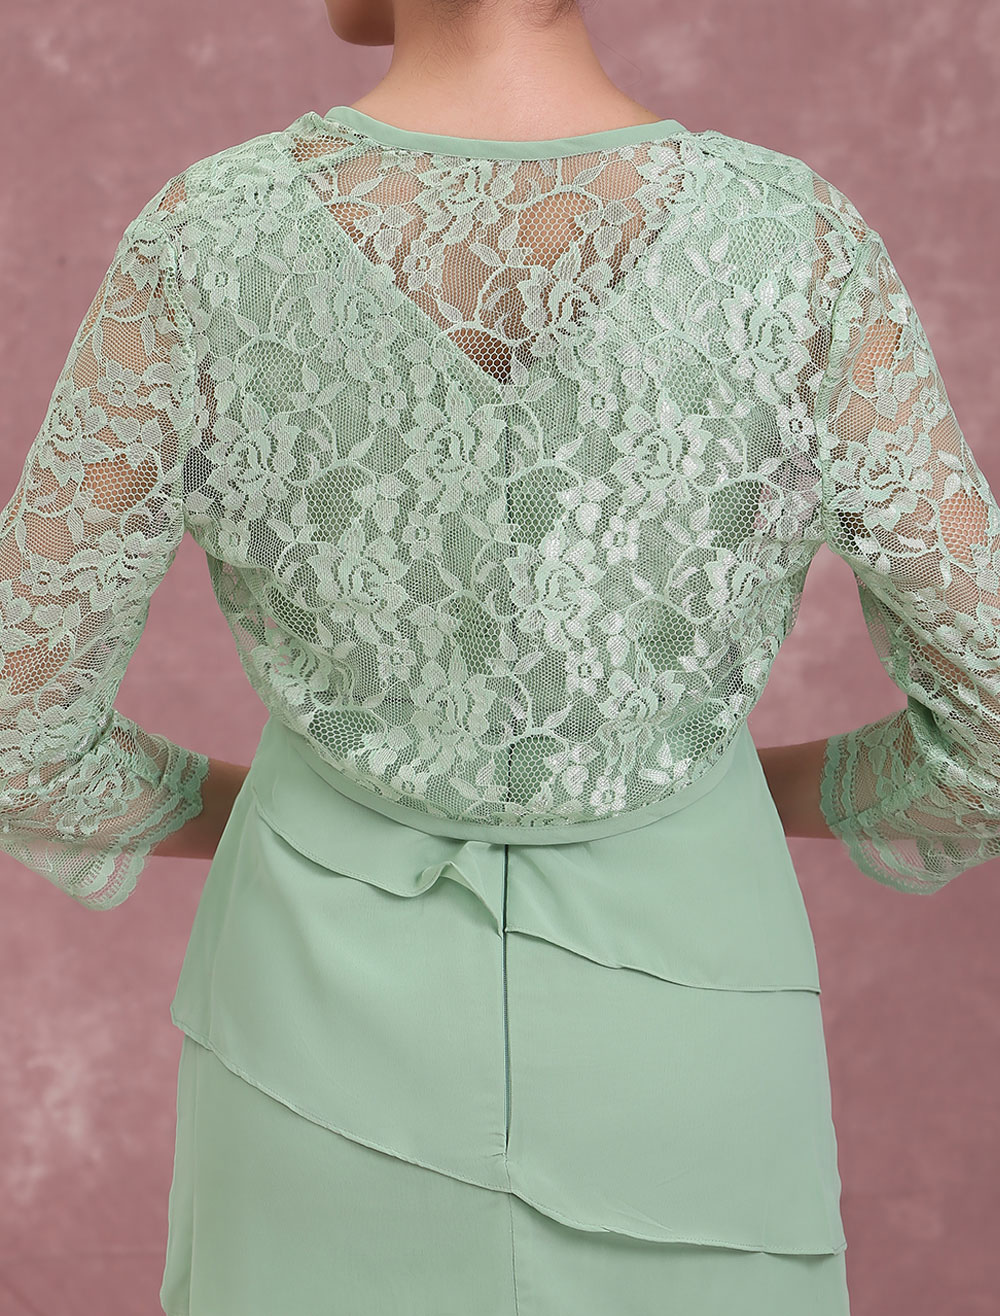 cb61bd39d90 ... Mother Of The Bride Dresses Two Piece Lace Chiffon Tiered Sage Green  Short Sheath Wedding Guest